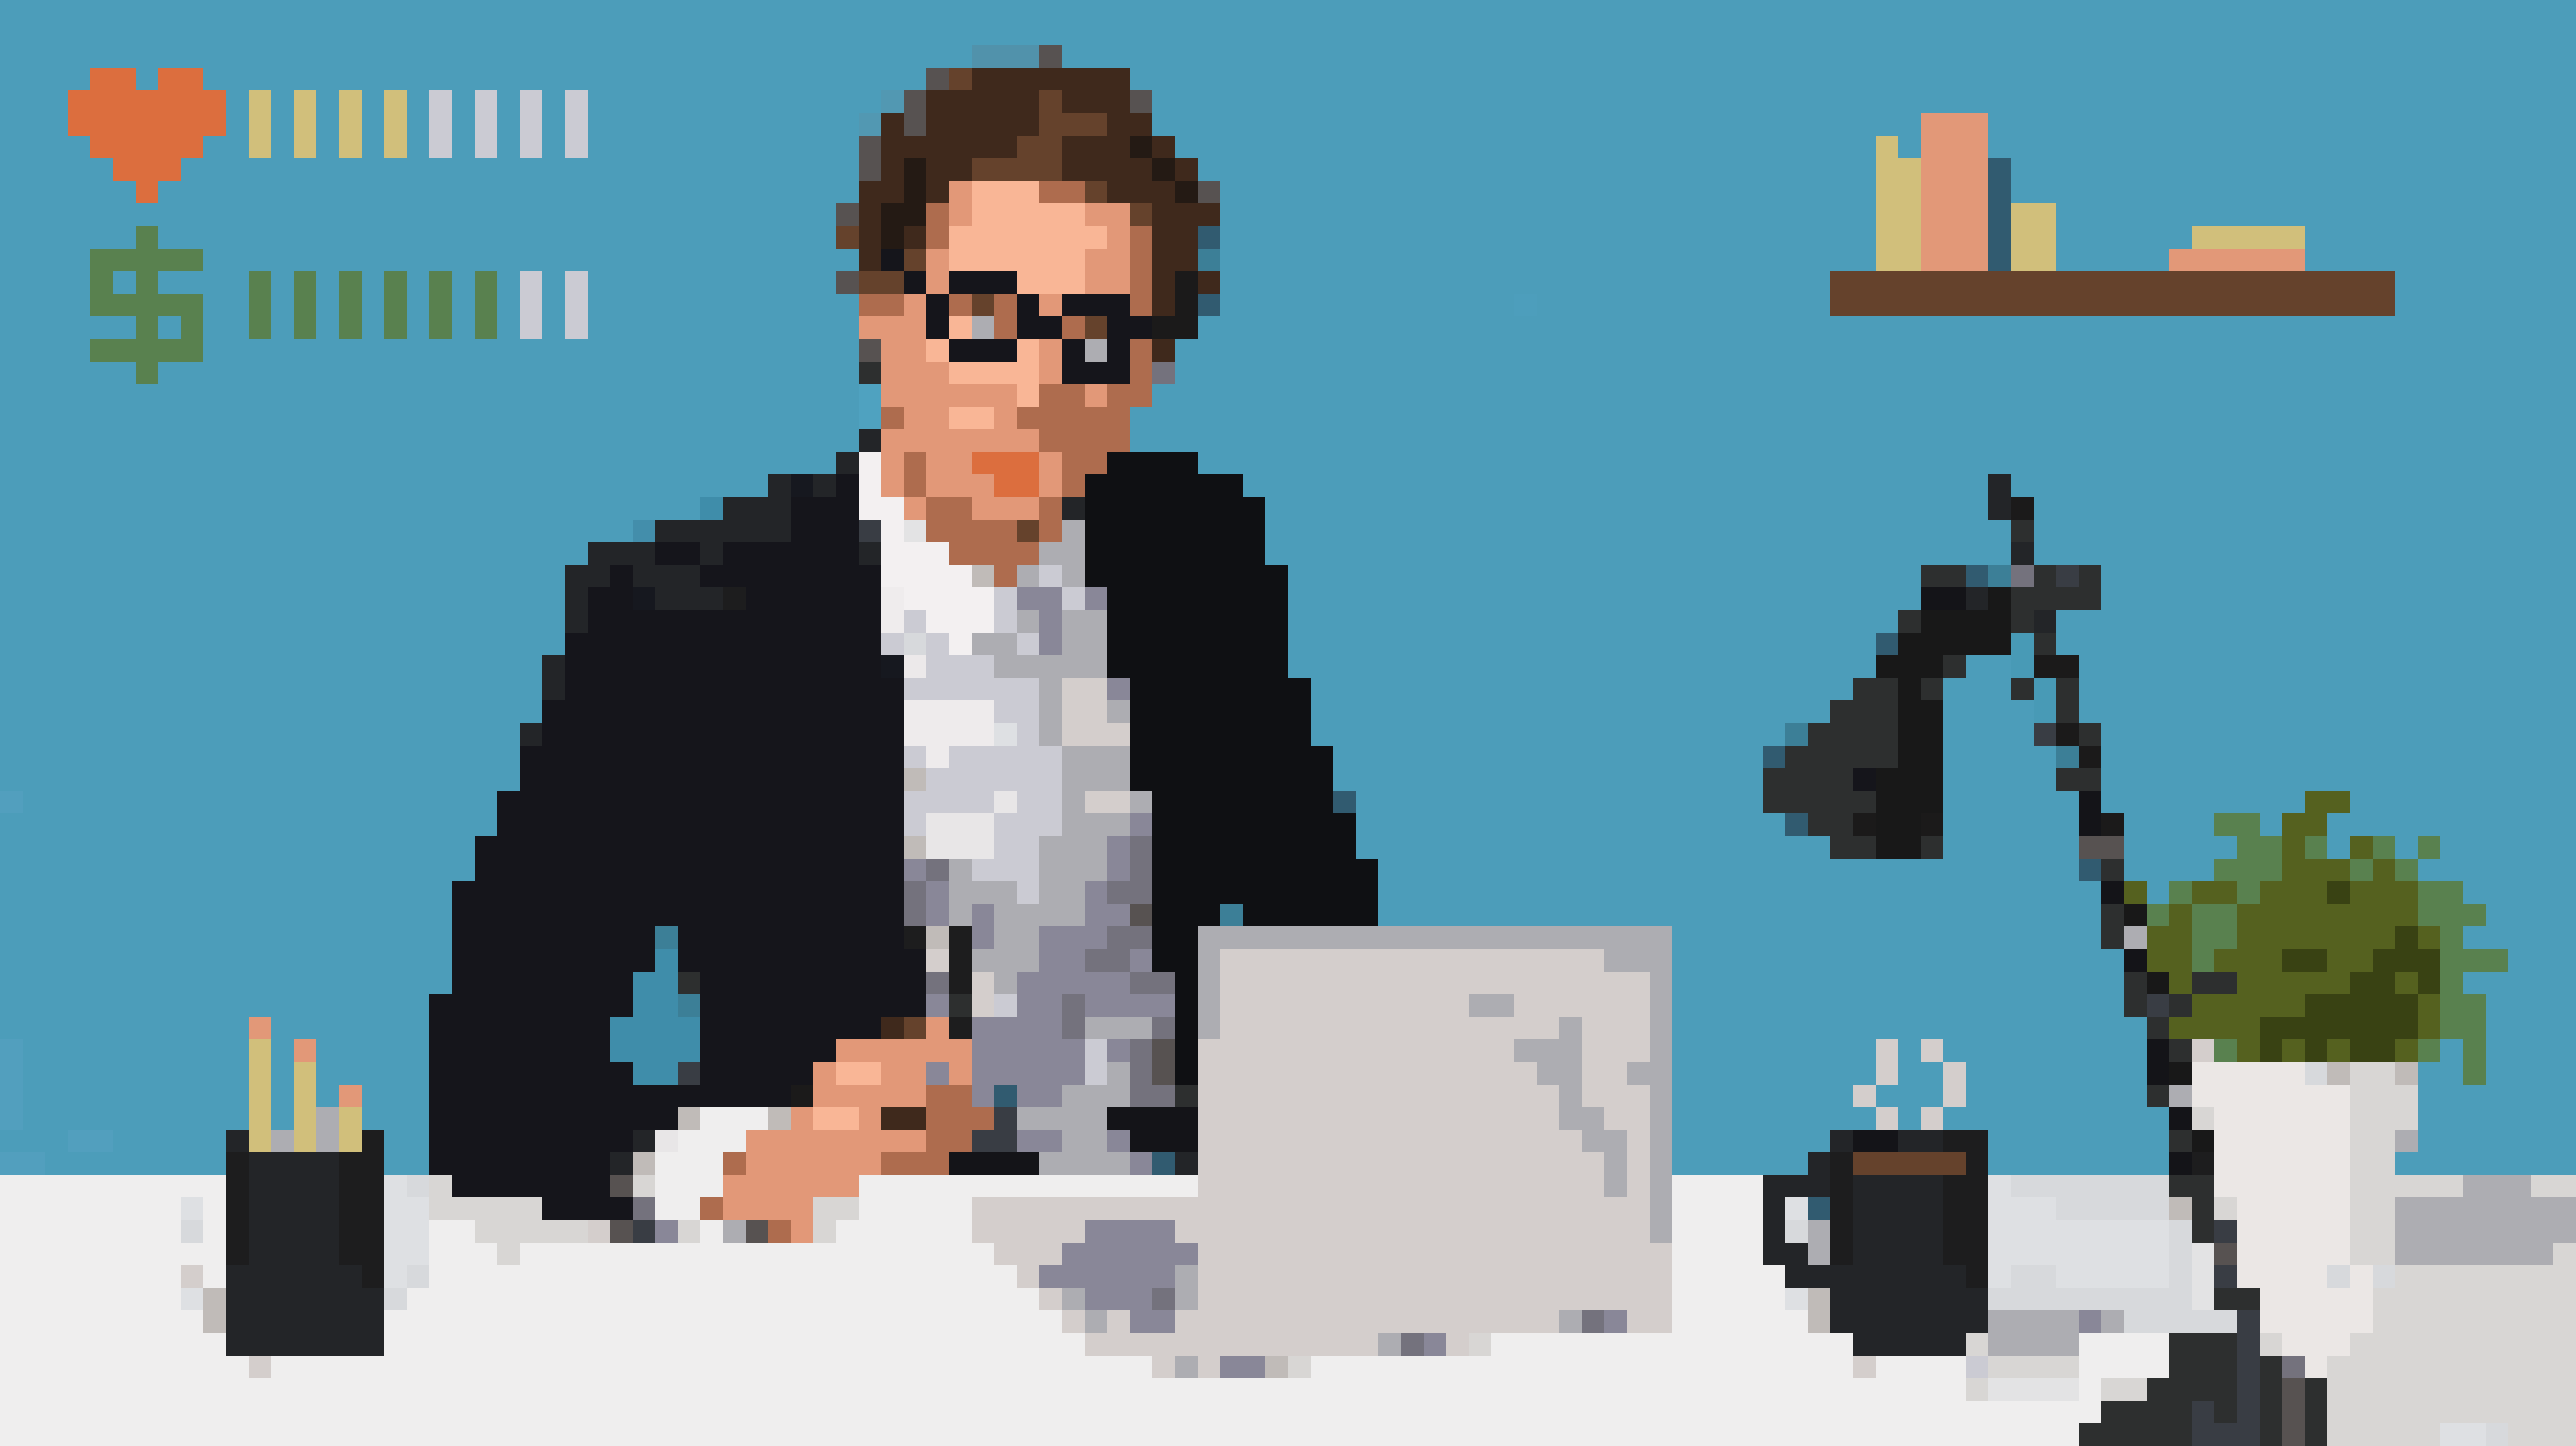 illustration of a man in a suit working at a laptop as if he is in an 8bit pixelated video game